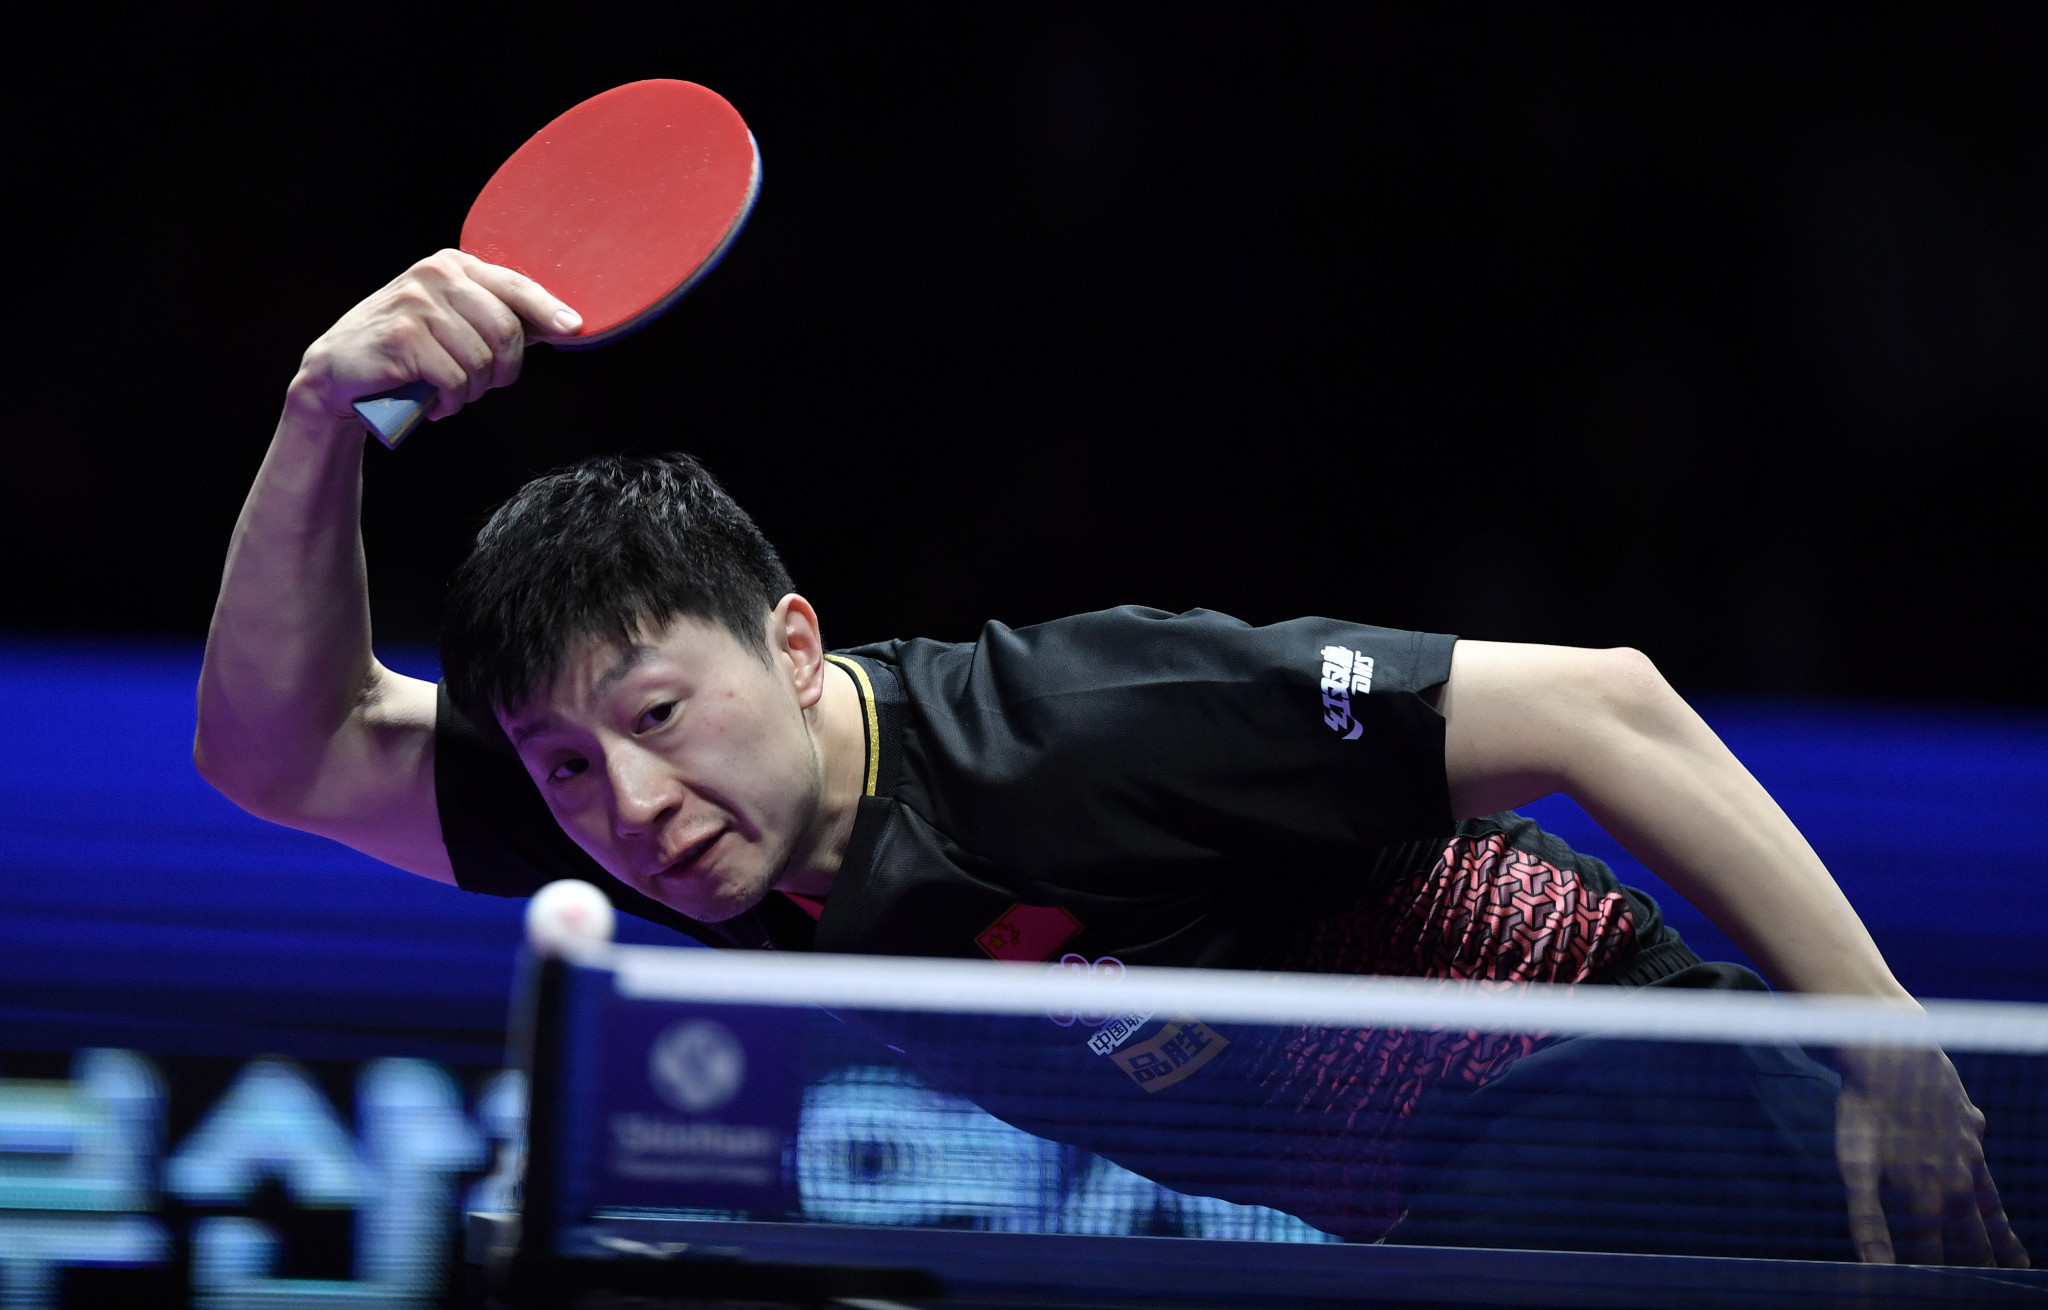 Table tennis attracts one million new social-media fans in 2019